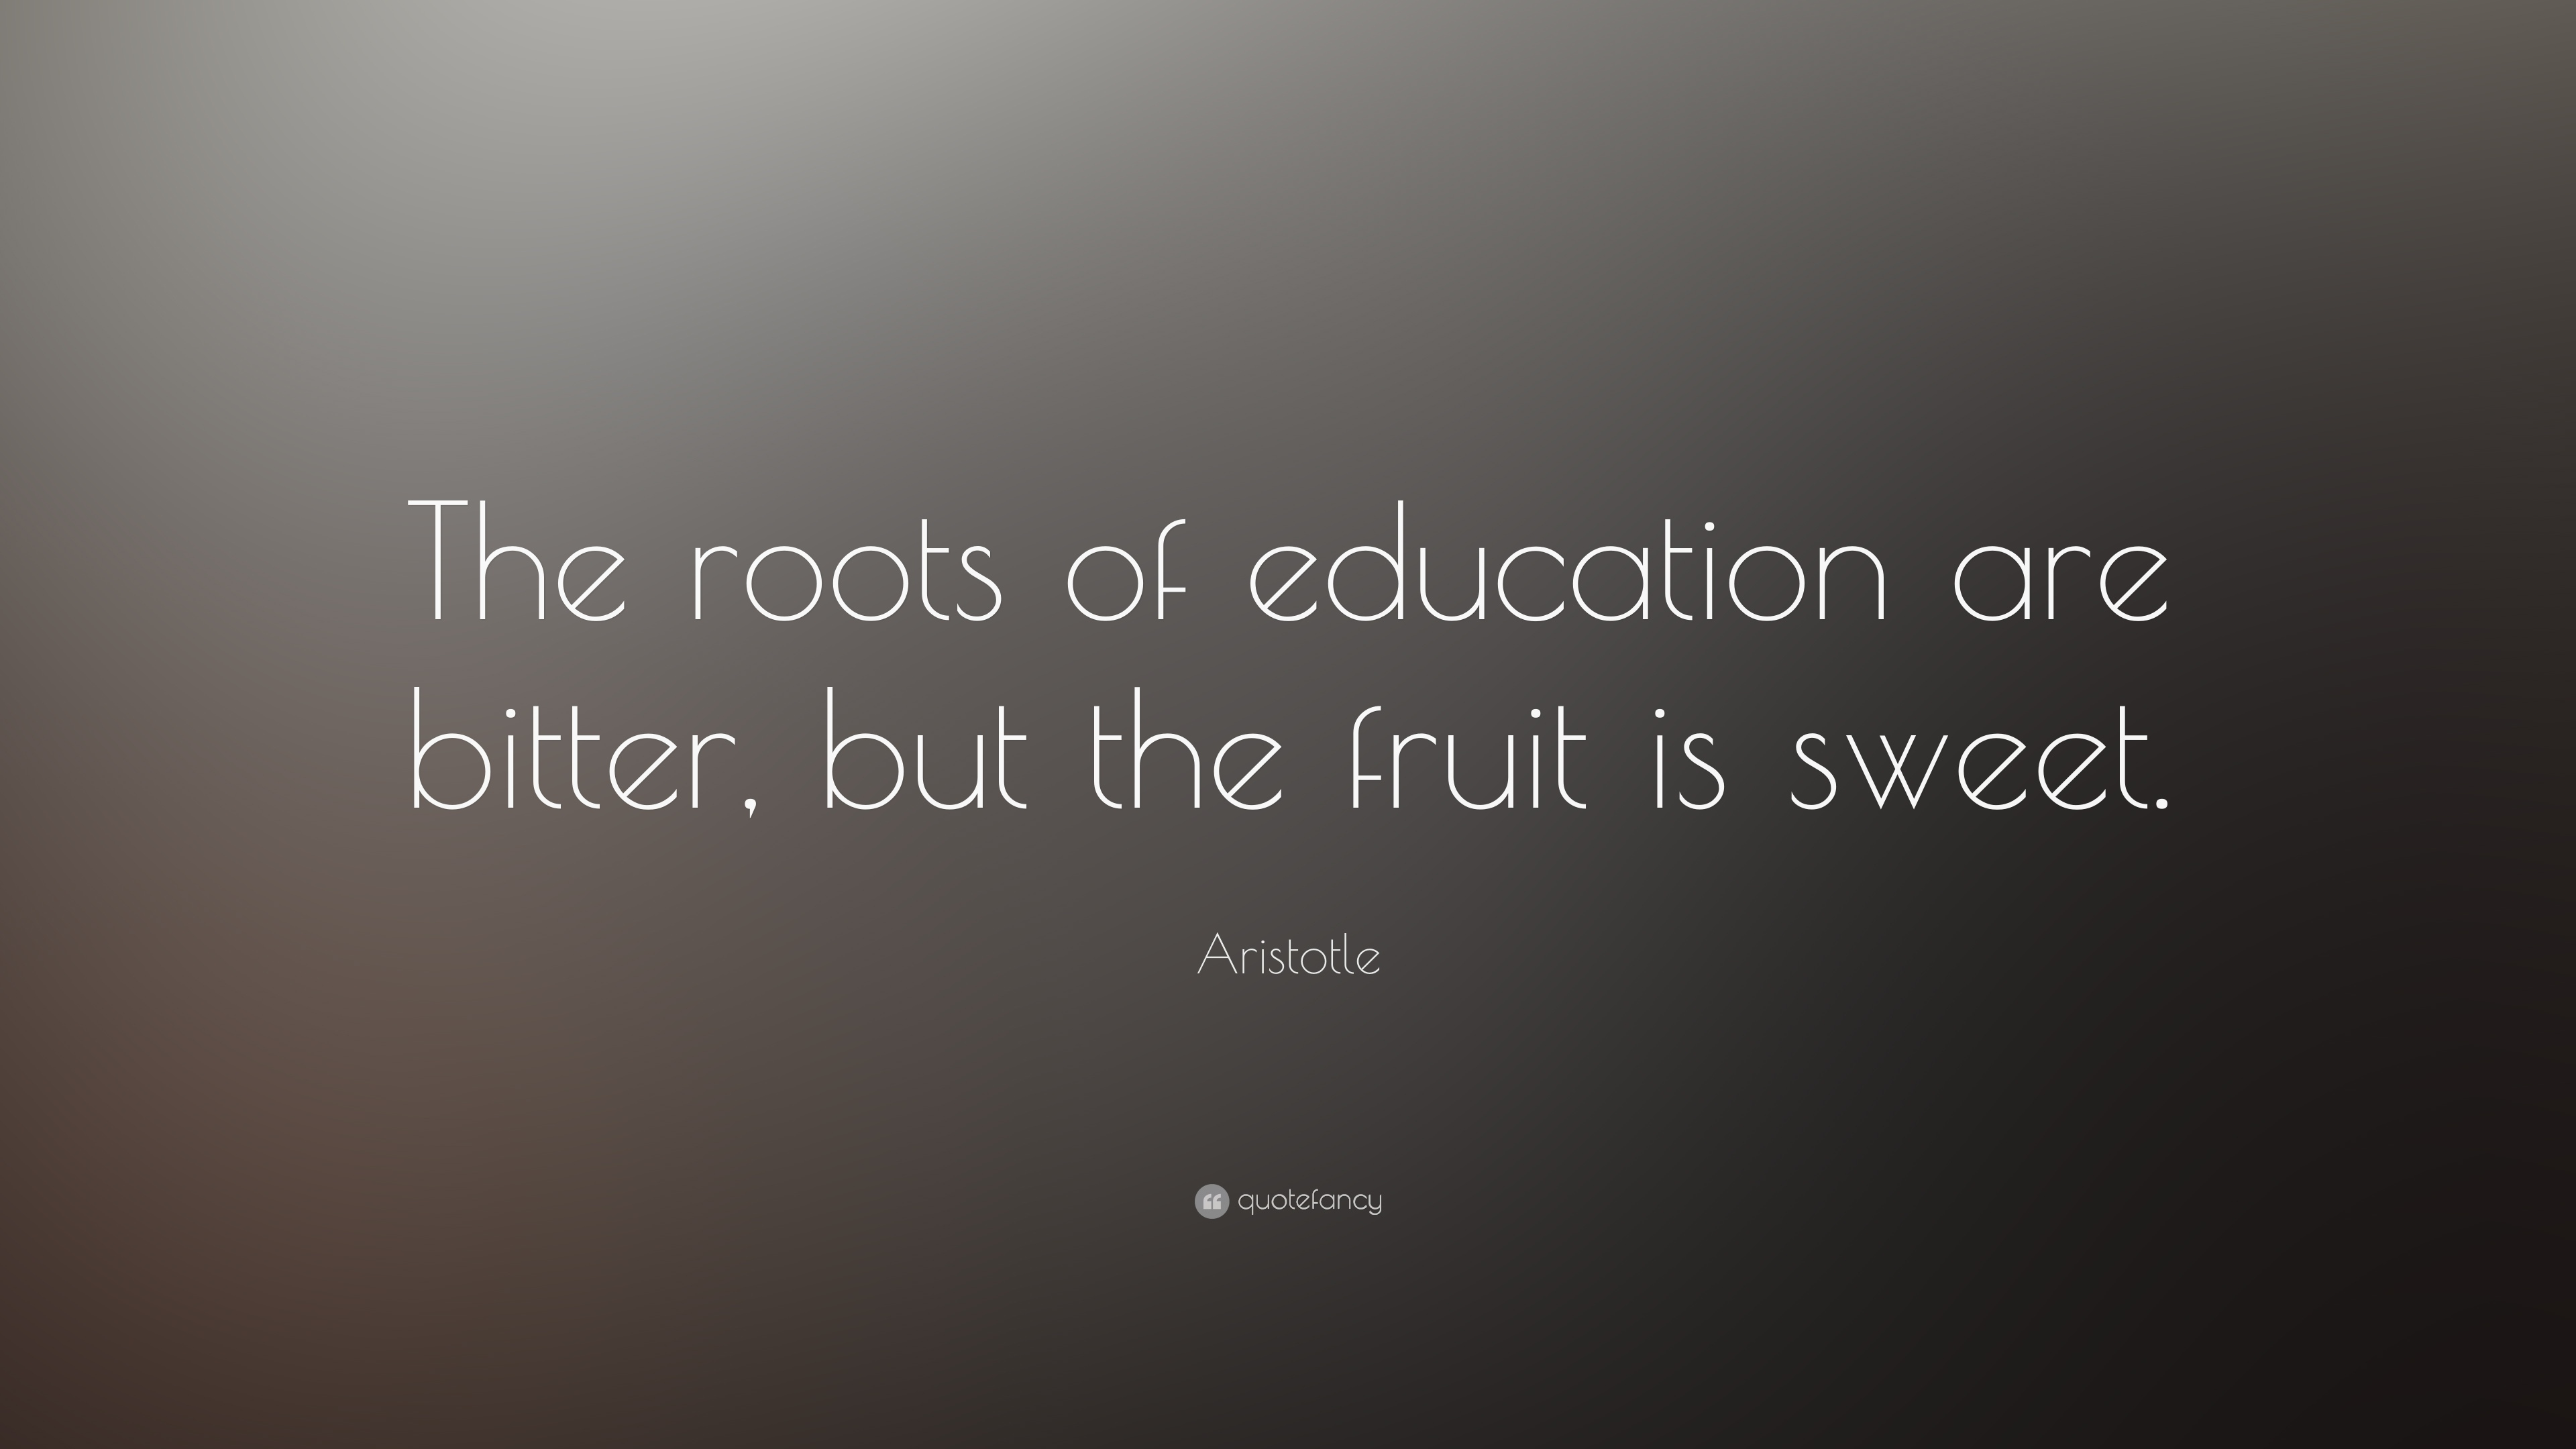 Aristotle Quote The Roots Of Education Are Bitter But The Fruit Is Sweet 19 Wallpapers Quotefancy